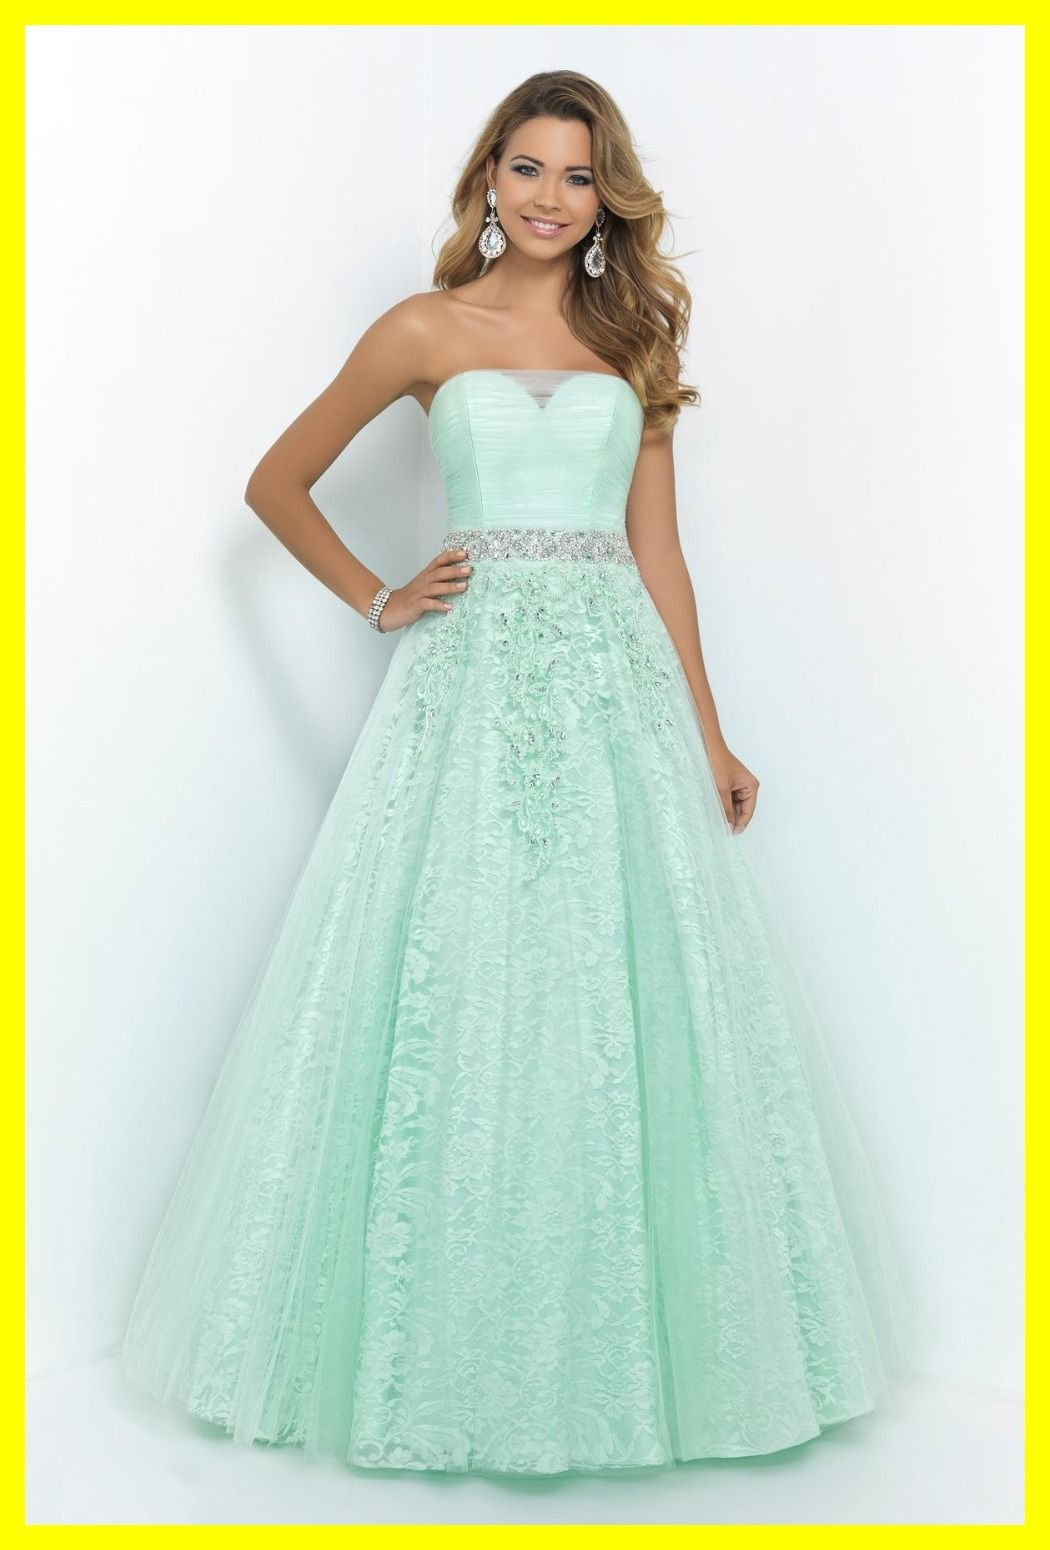 Prom dresses uk kids color dress pinterest chiffon maxi dress